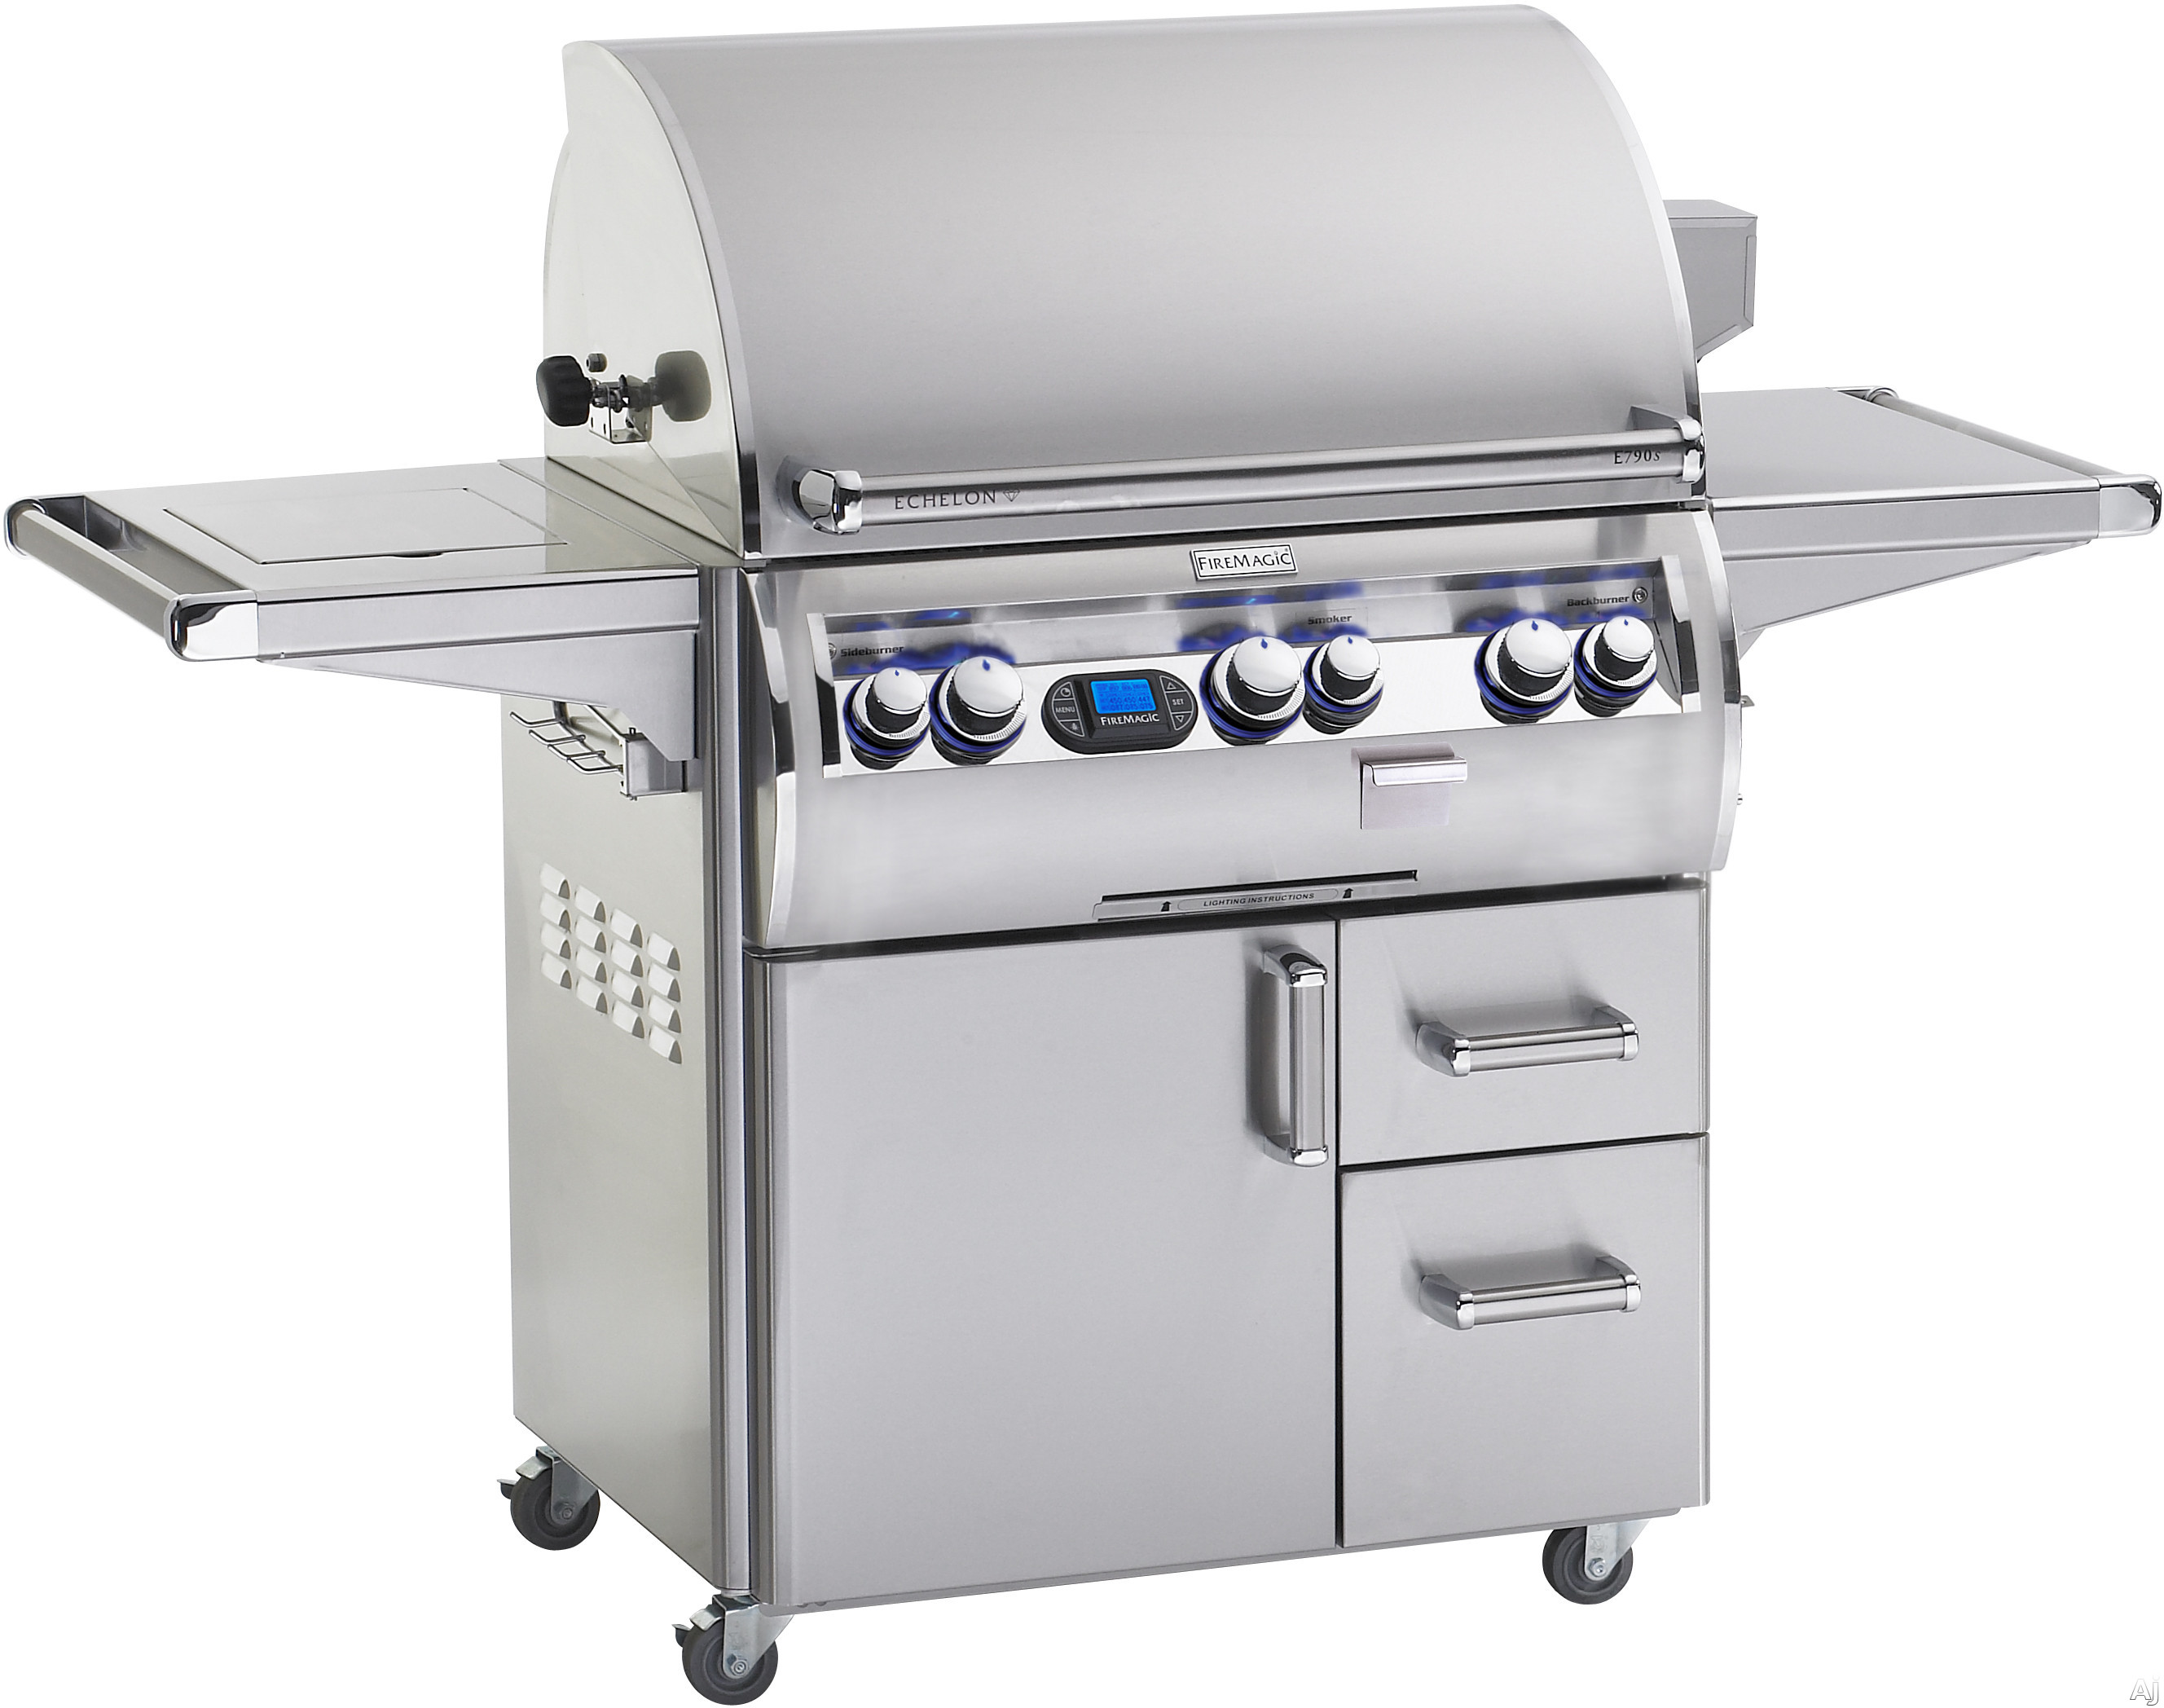 Fire Magic Echelon Collection E790S4EAN62W 92 Inch Freestanding Gas Grill with Rotisserie Kit, Analog Temperature, Gague Smoker, 792 sq. in. Cooking Surface, 99,000 BTU Stainless Steel Primary Burners, 13,000 Secondary Burners, 15,000 BTU Single Side Bur